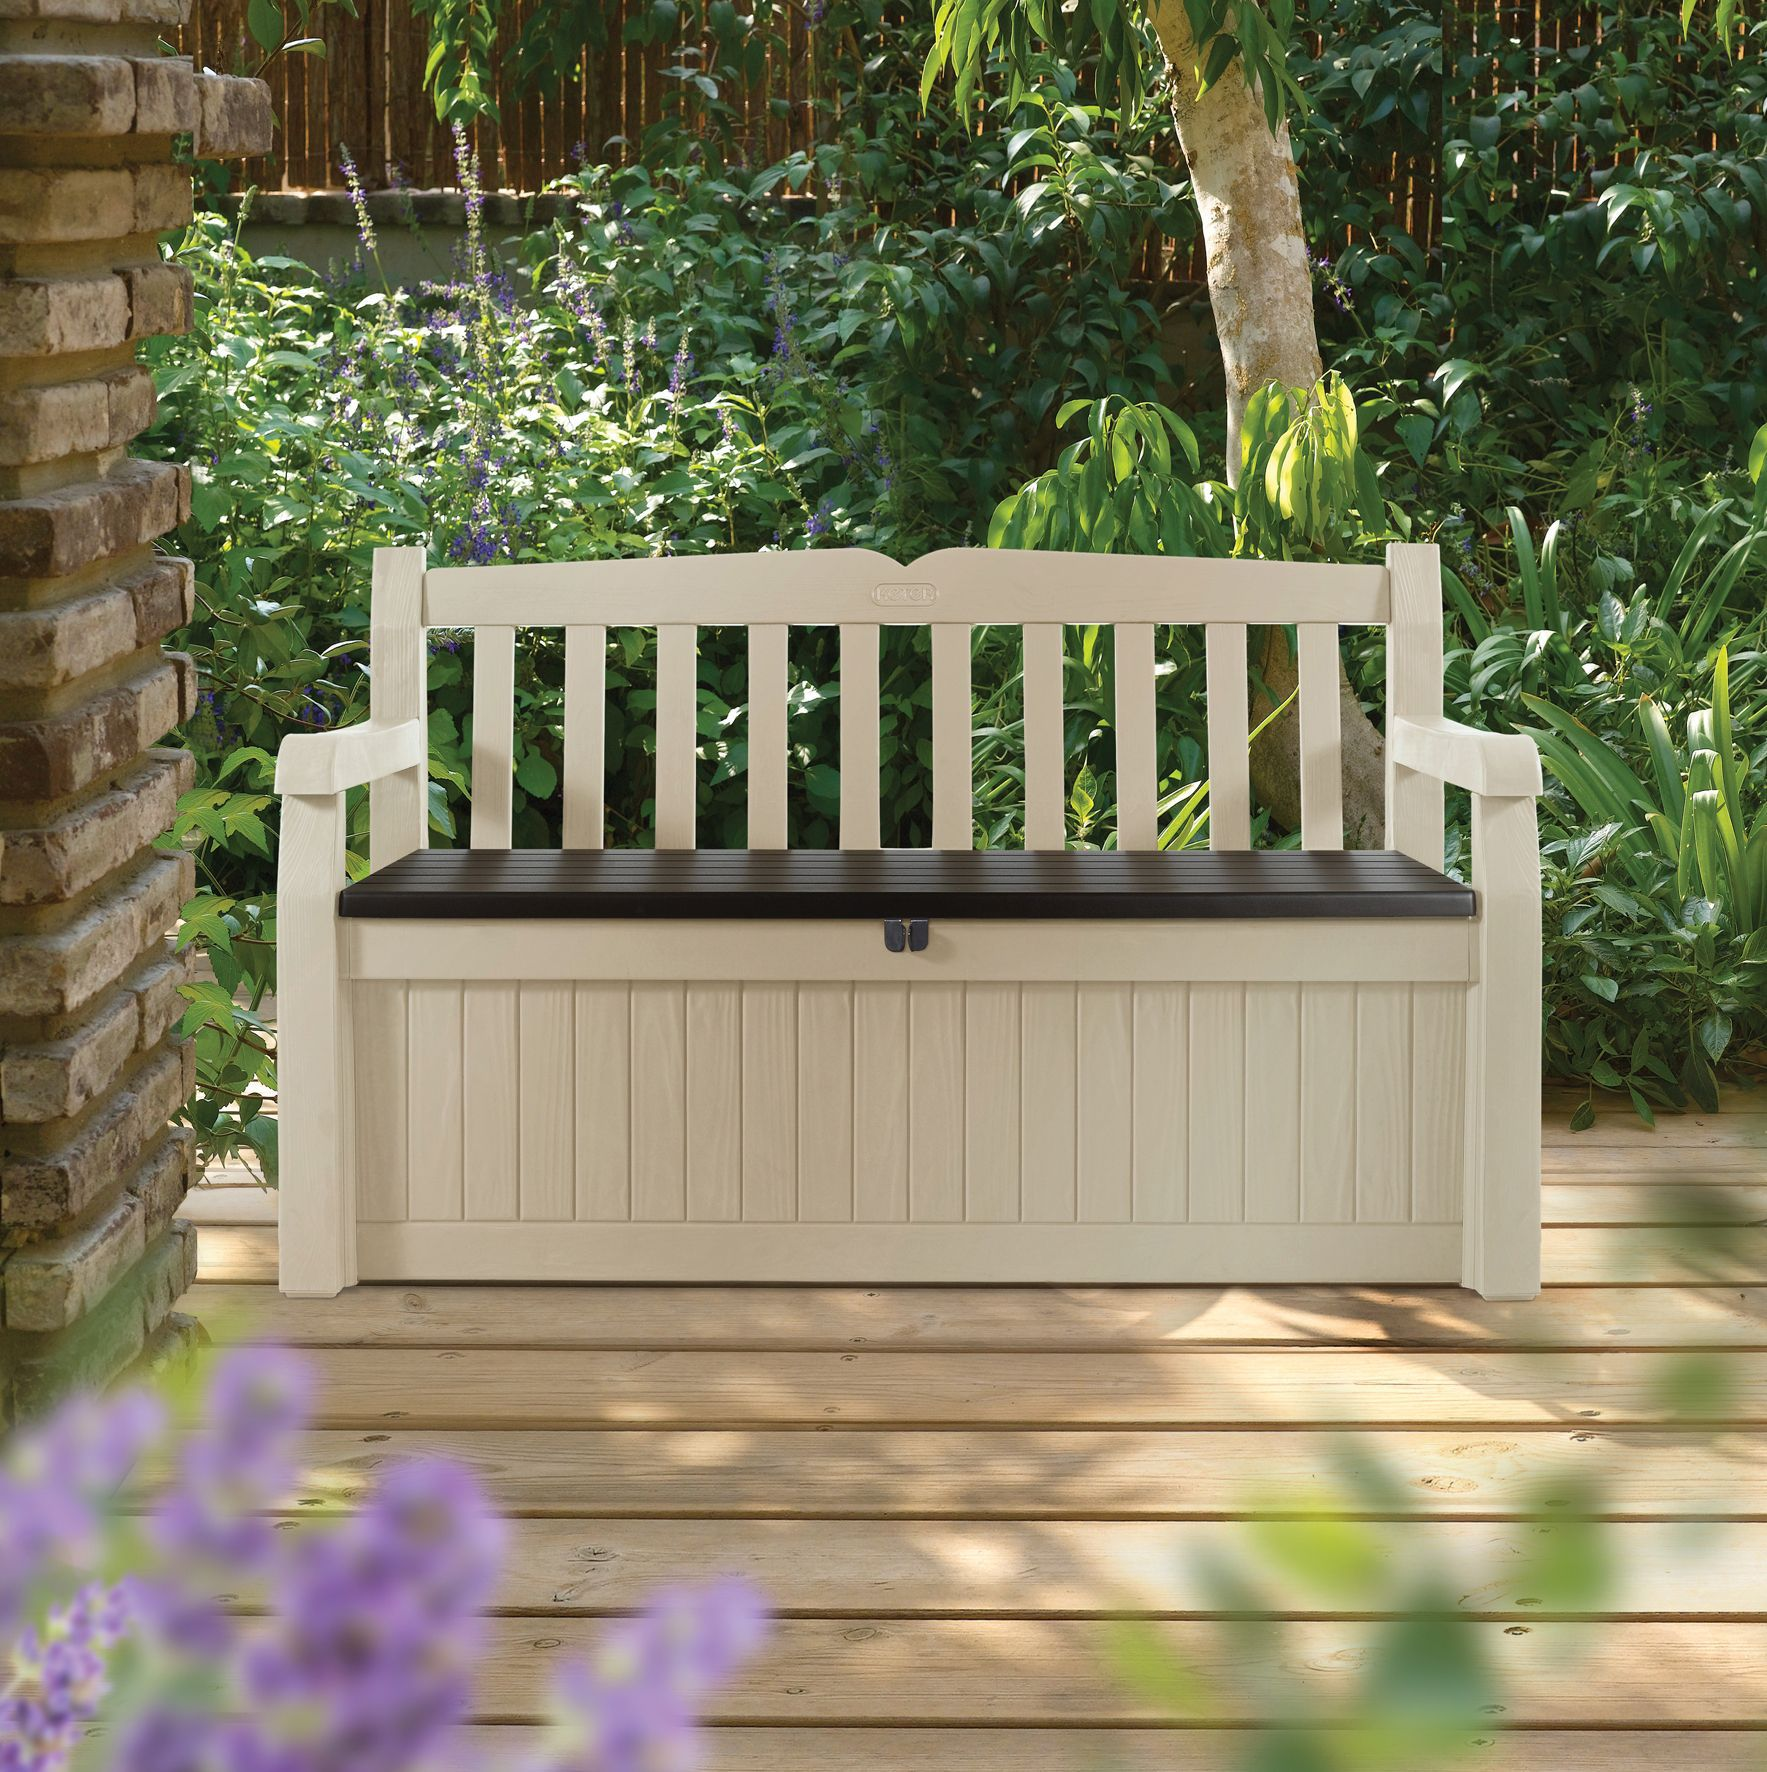 Eden Plastic Garden Storage Bench Departments Diy At B Q